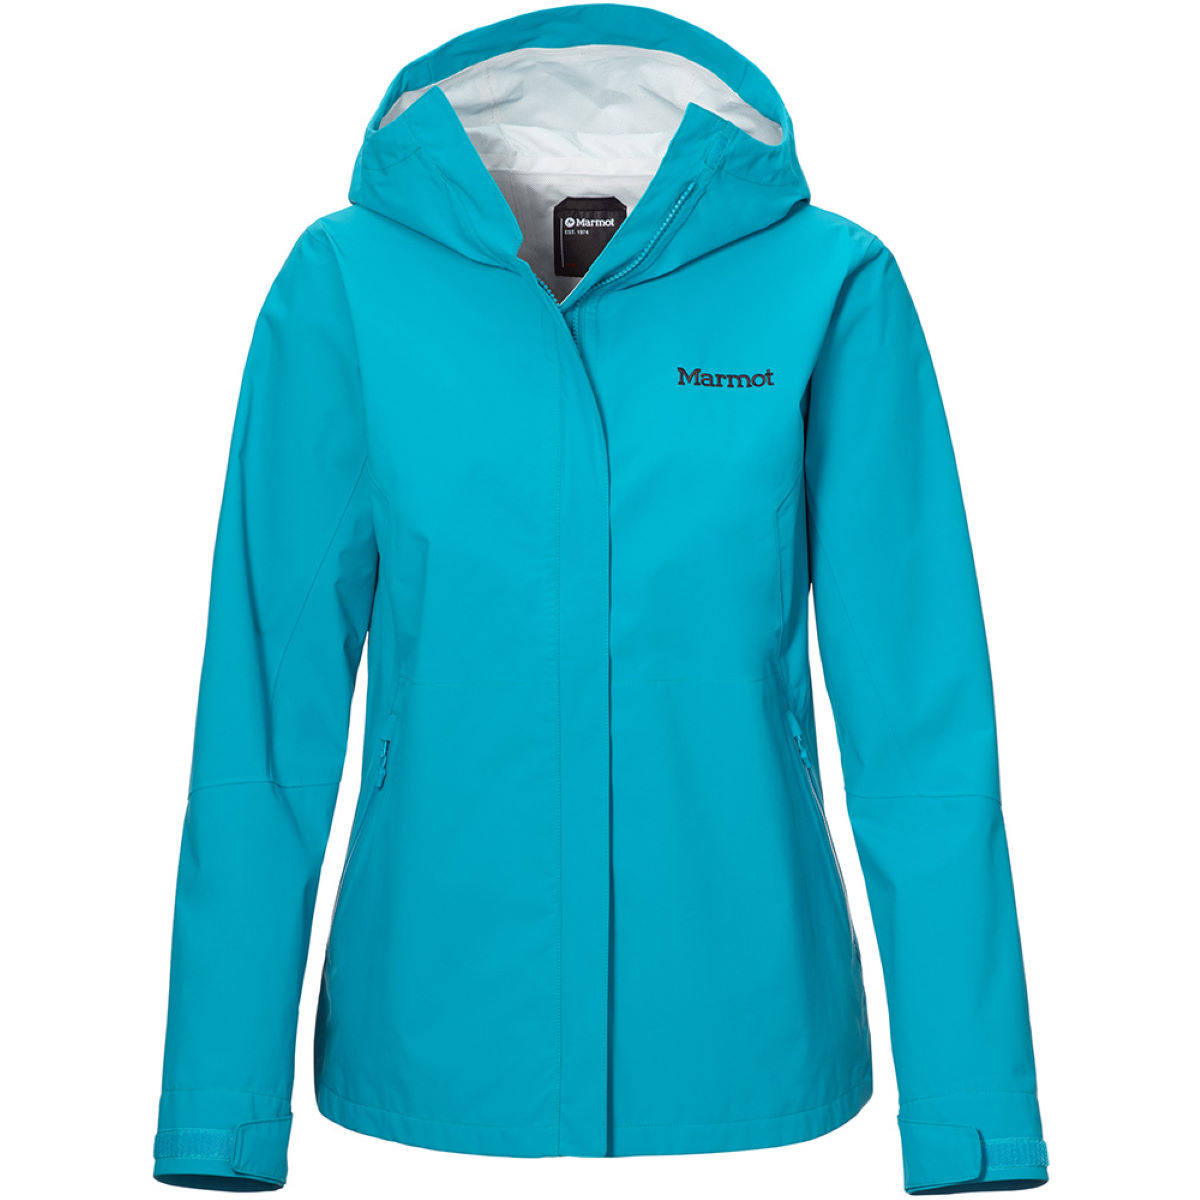 Marmot Marmot Womens EVODry Bross Jacket   Jackets